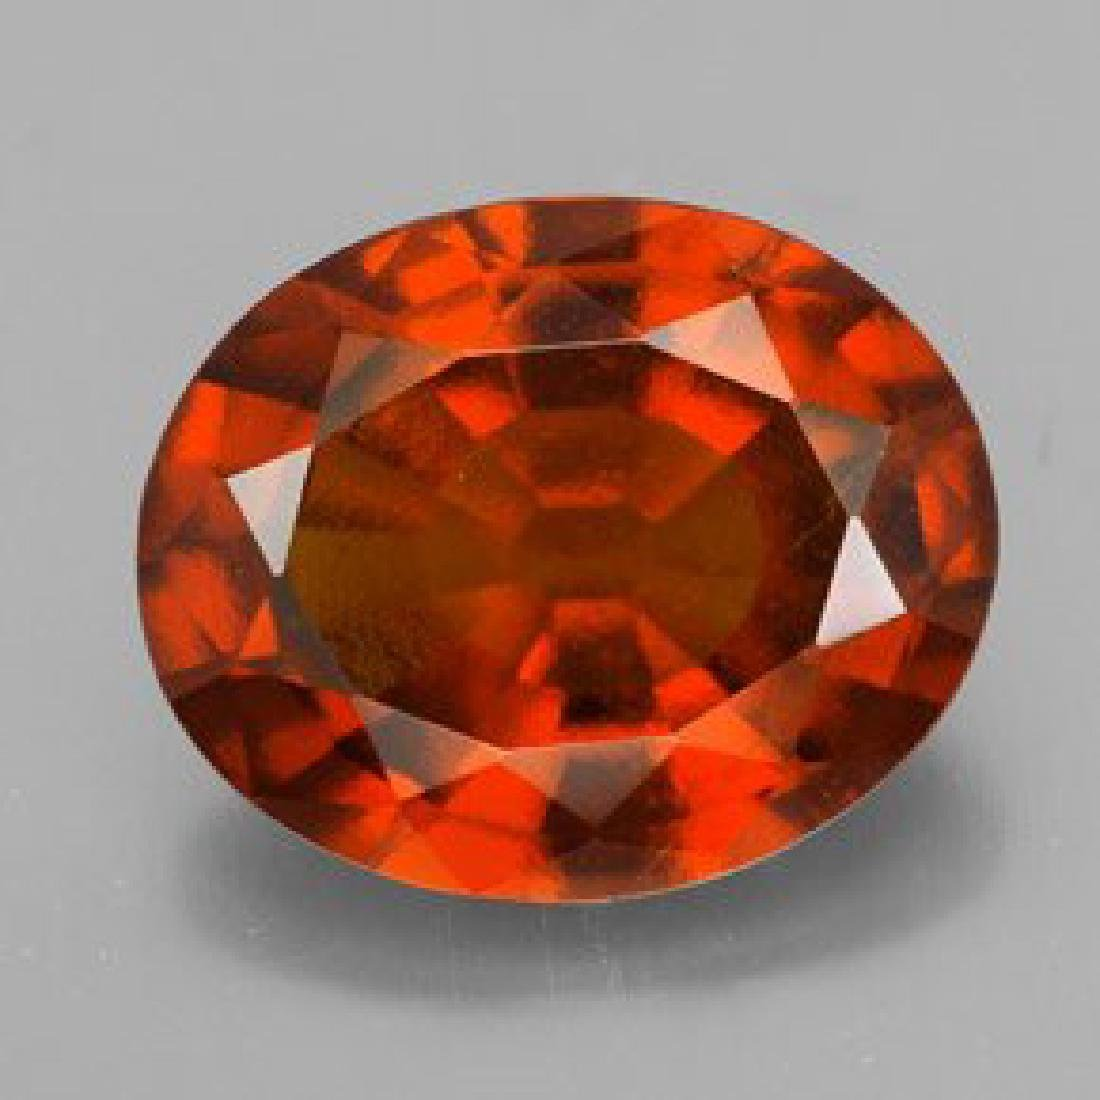 Natural Hessonite Garnet 4.20 ct - no Treatment